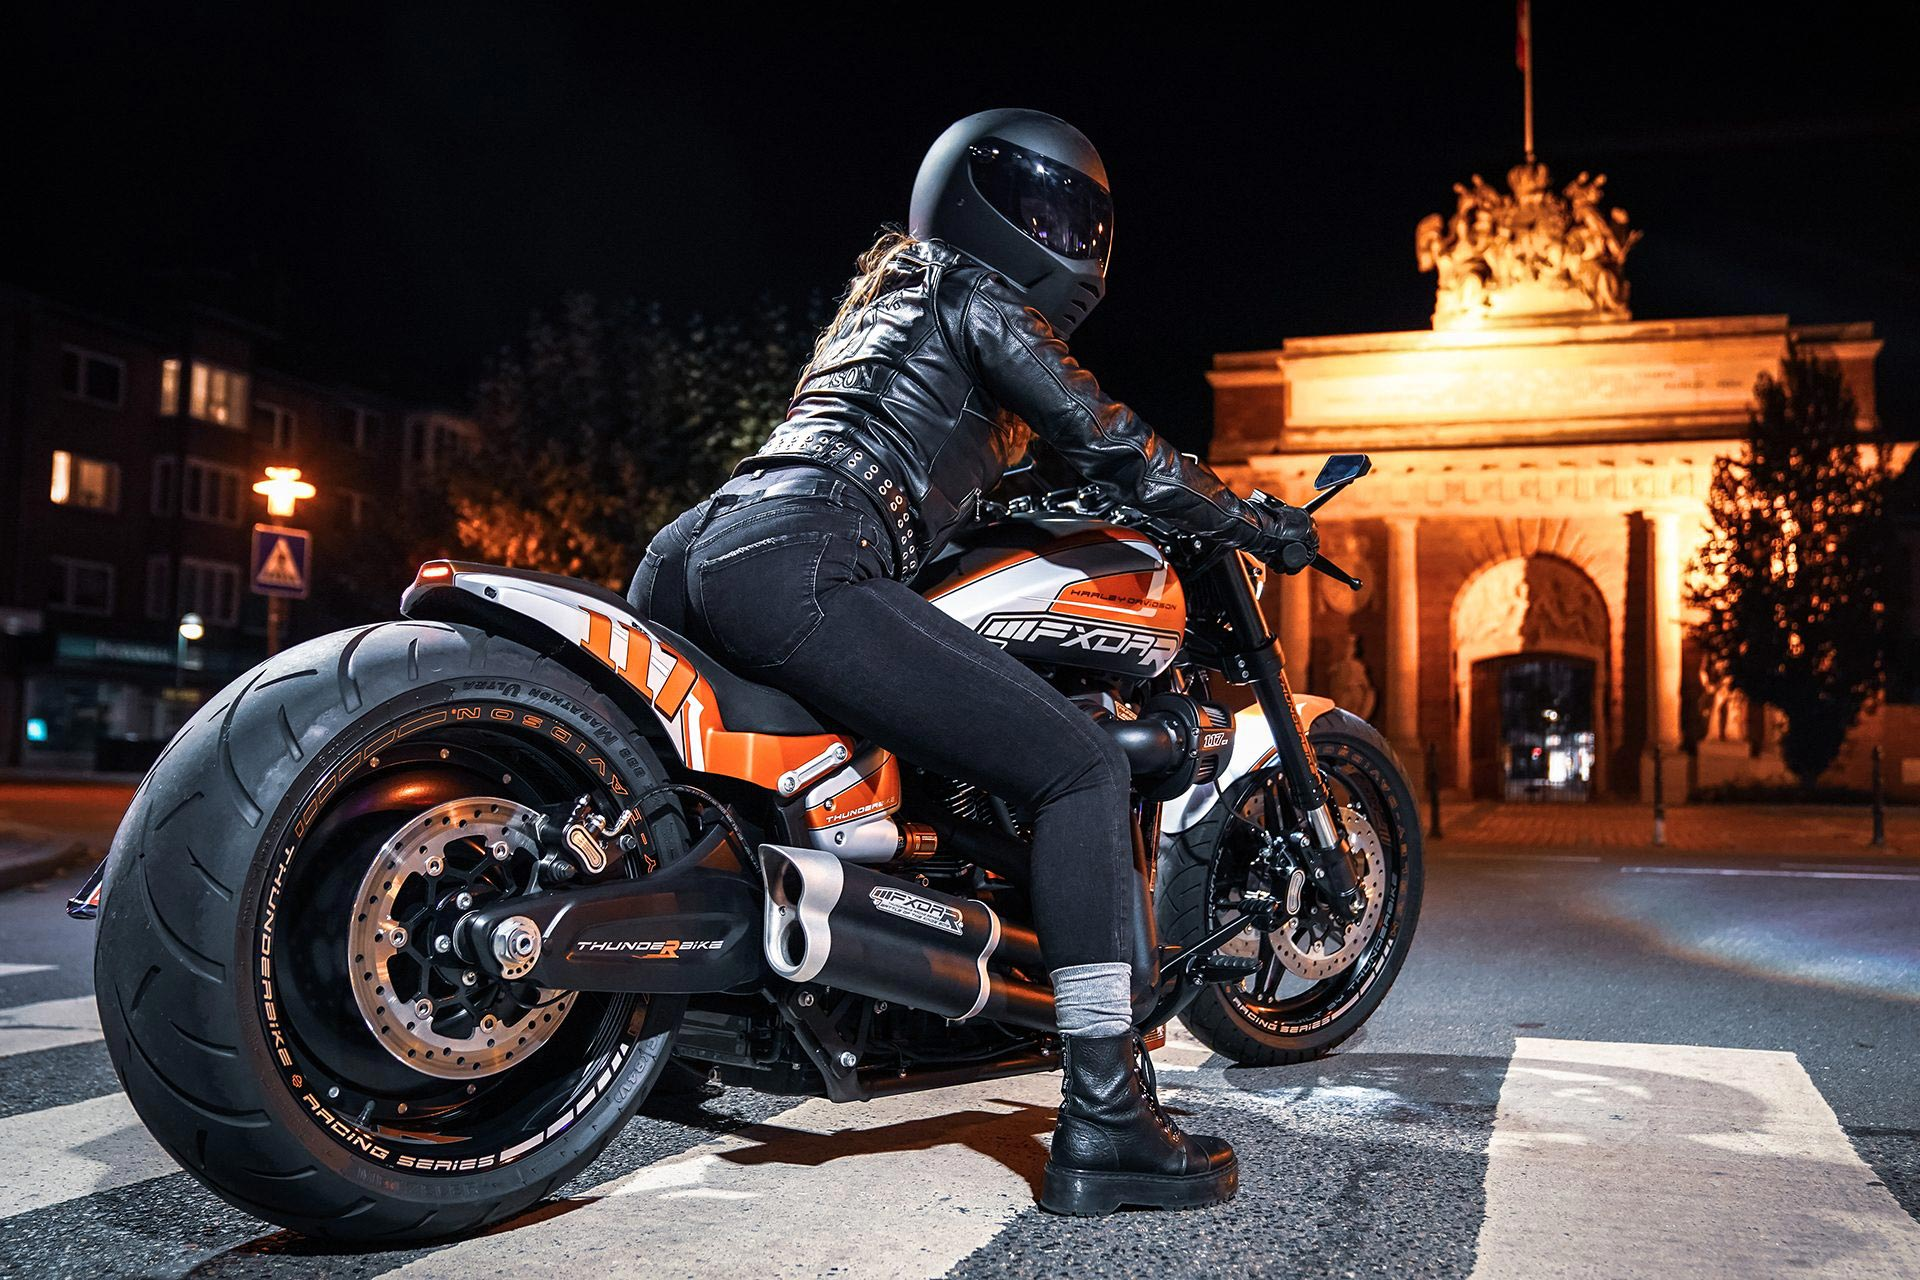 Inspiration Friday: Harley-Davidson Battle of the Kings Finals 2019